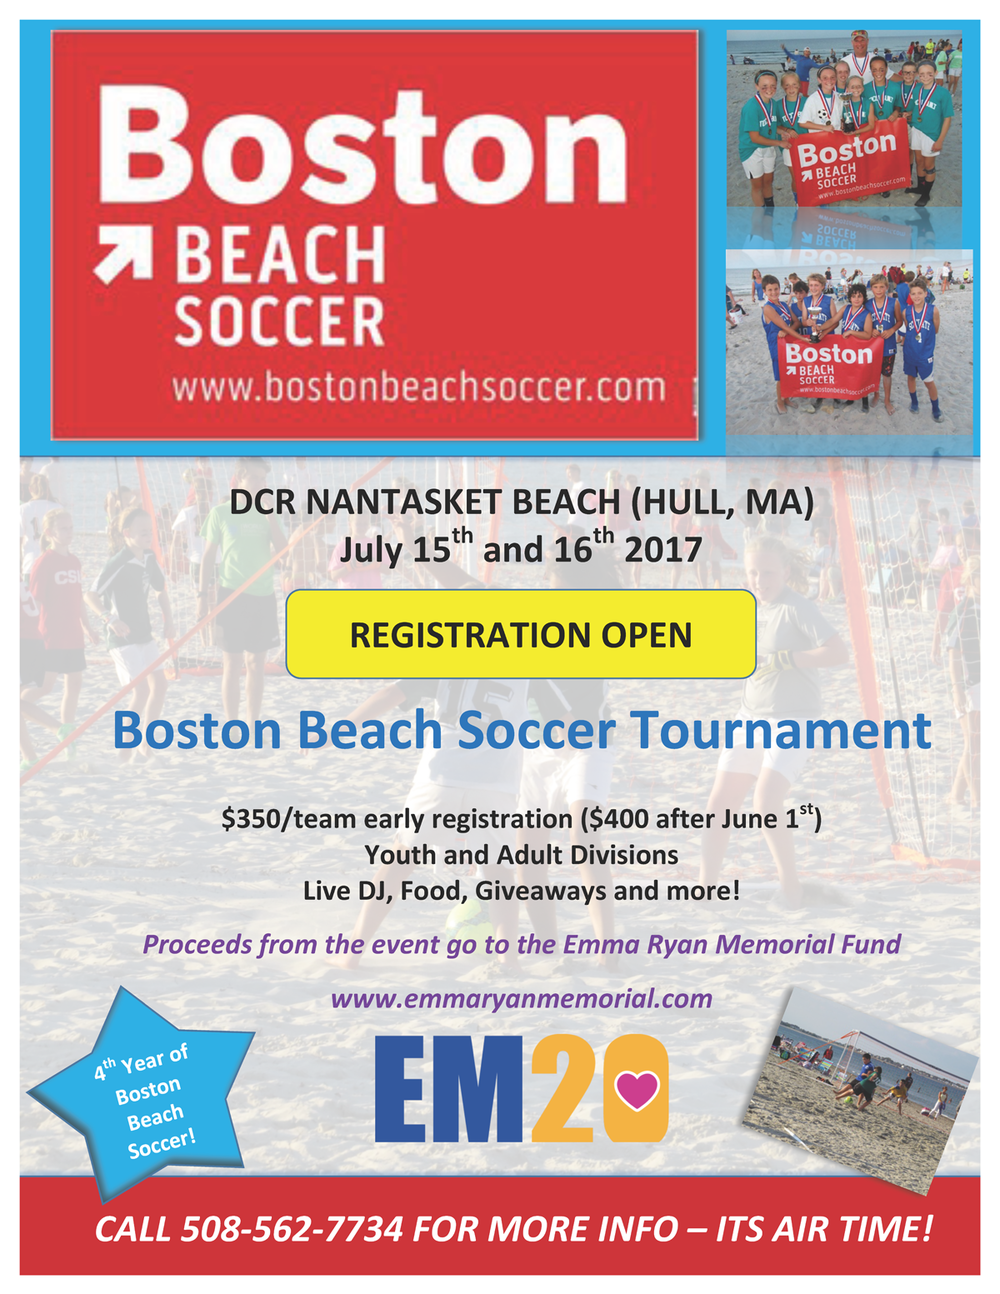 HULL Boston Beach Soccer 2017 flyer (1).png